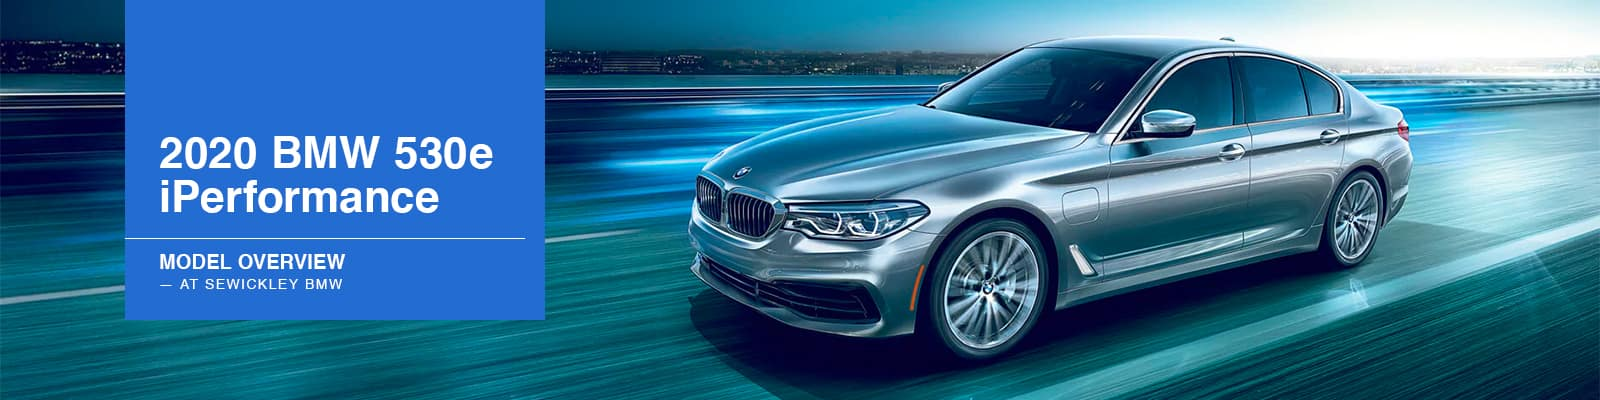 2020 Bmw 530e Iperformance Review Specs Price Sewickley Bmw